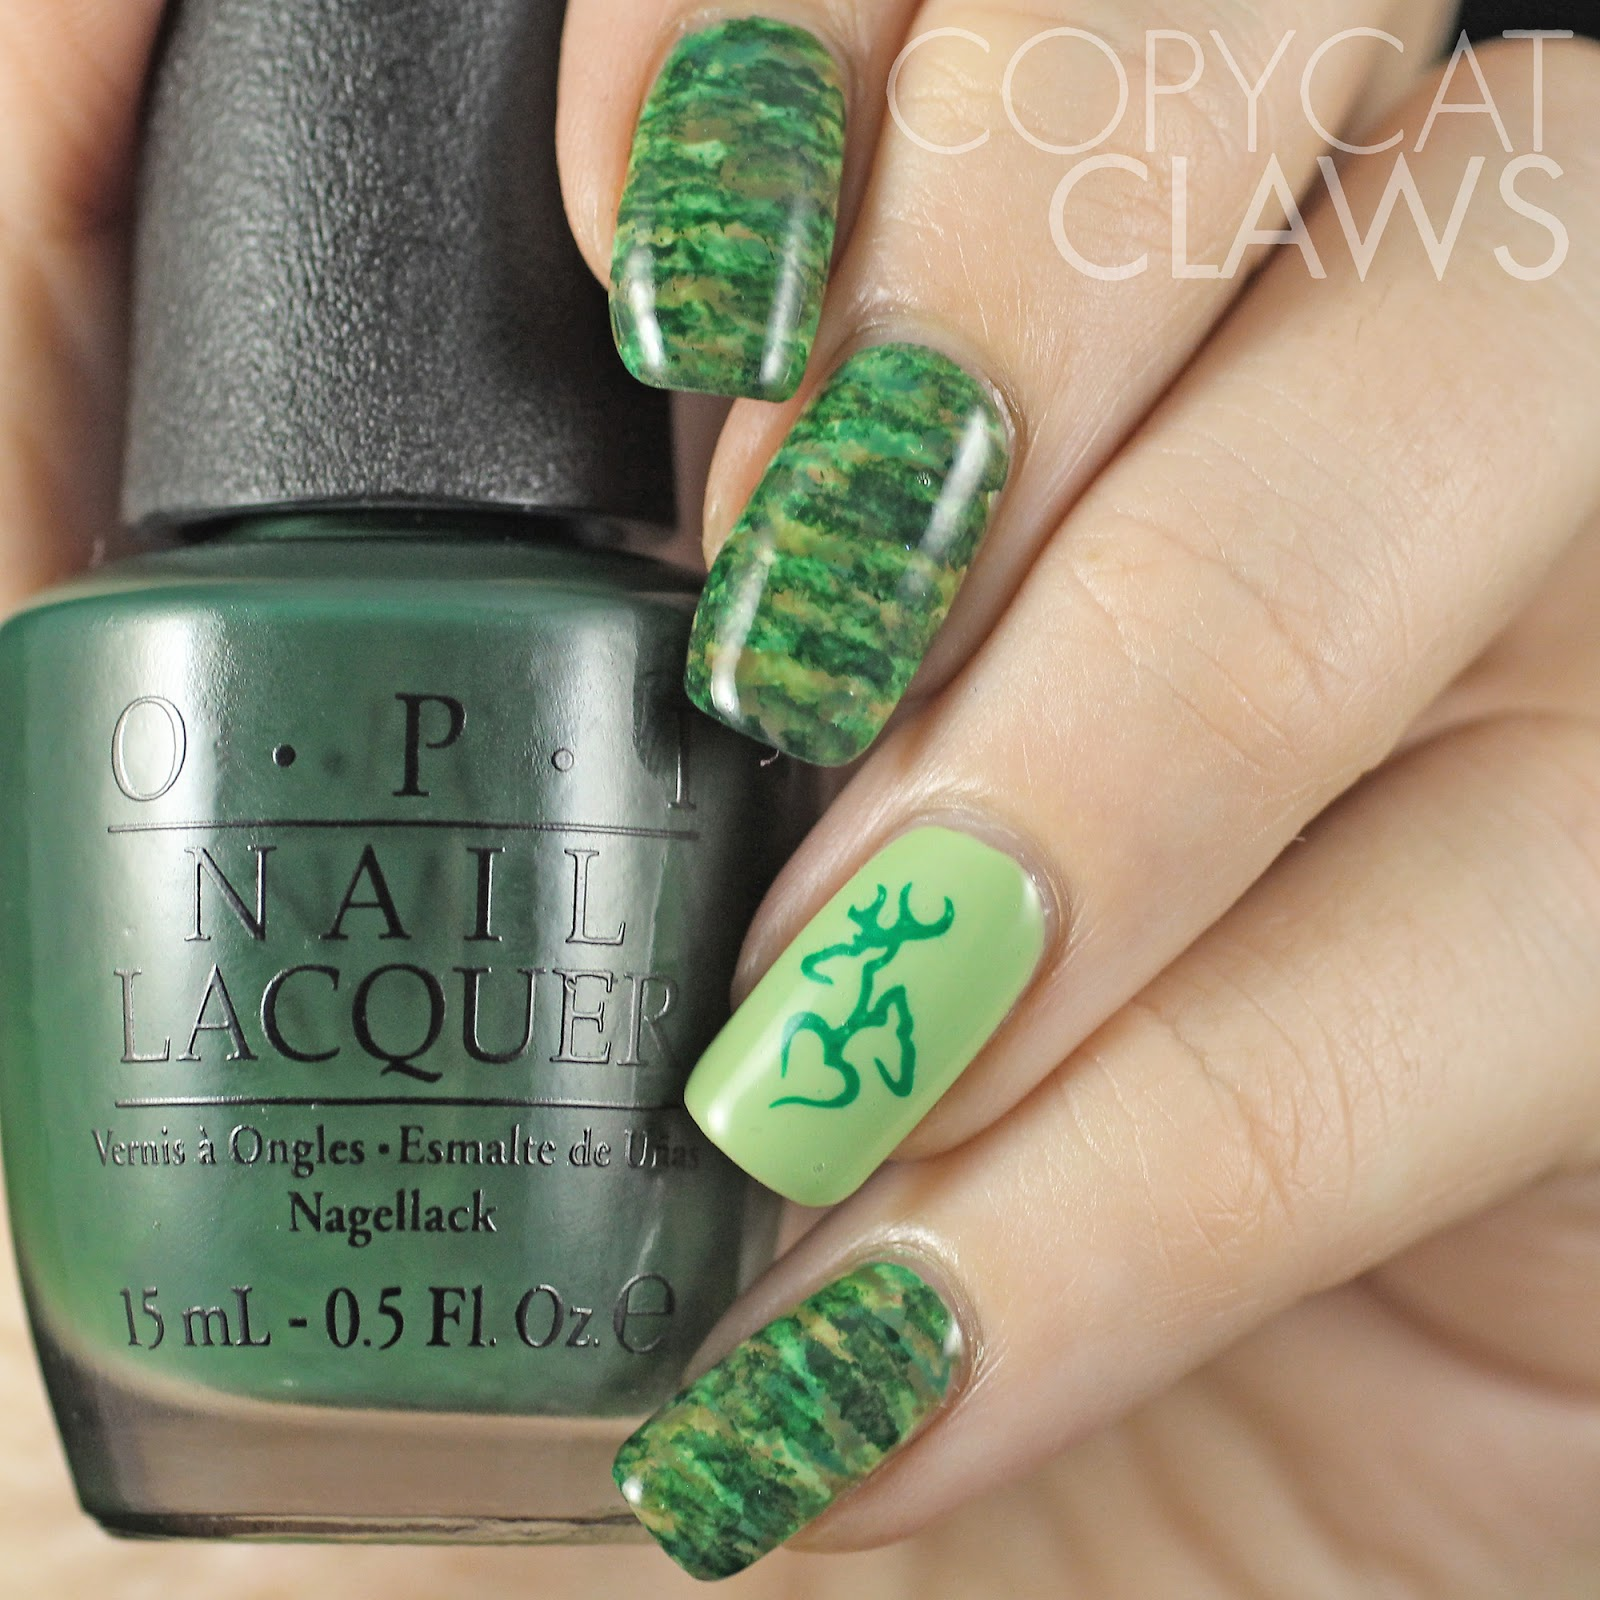 Copycat Claws: Chisel Camo Nails Inspired by Beaching Nails